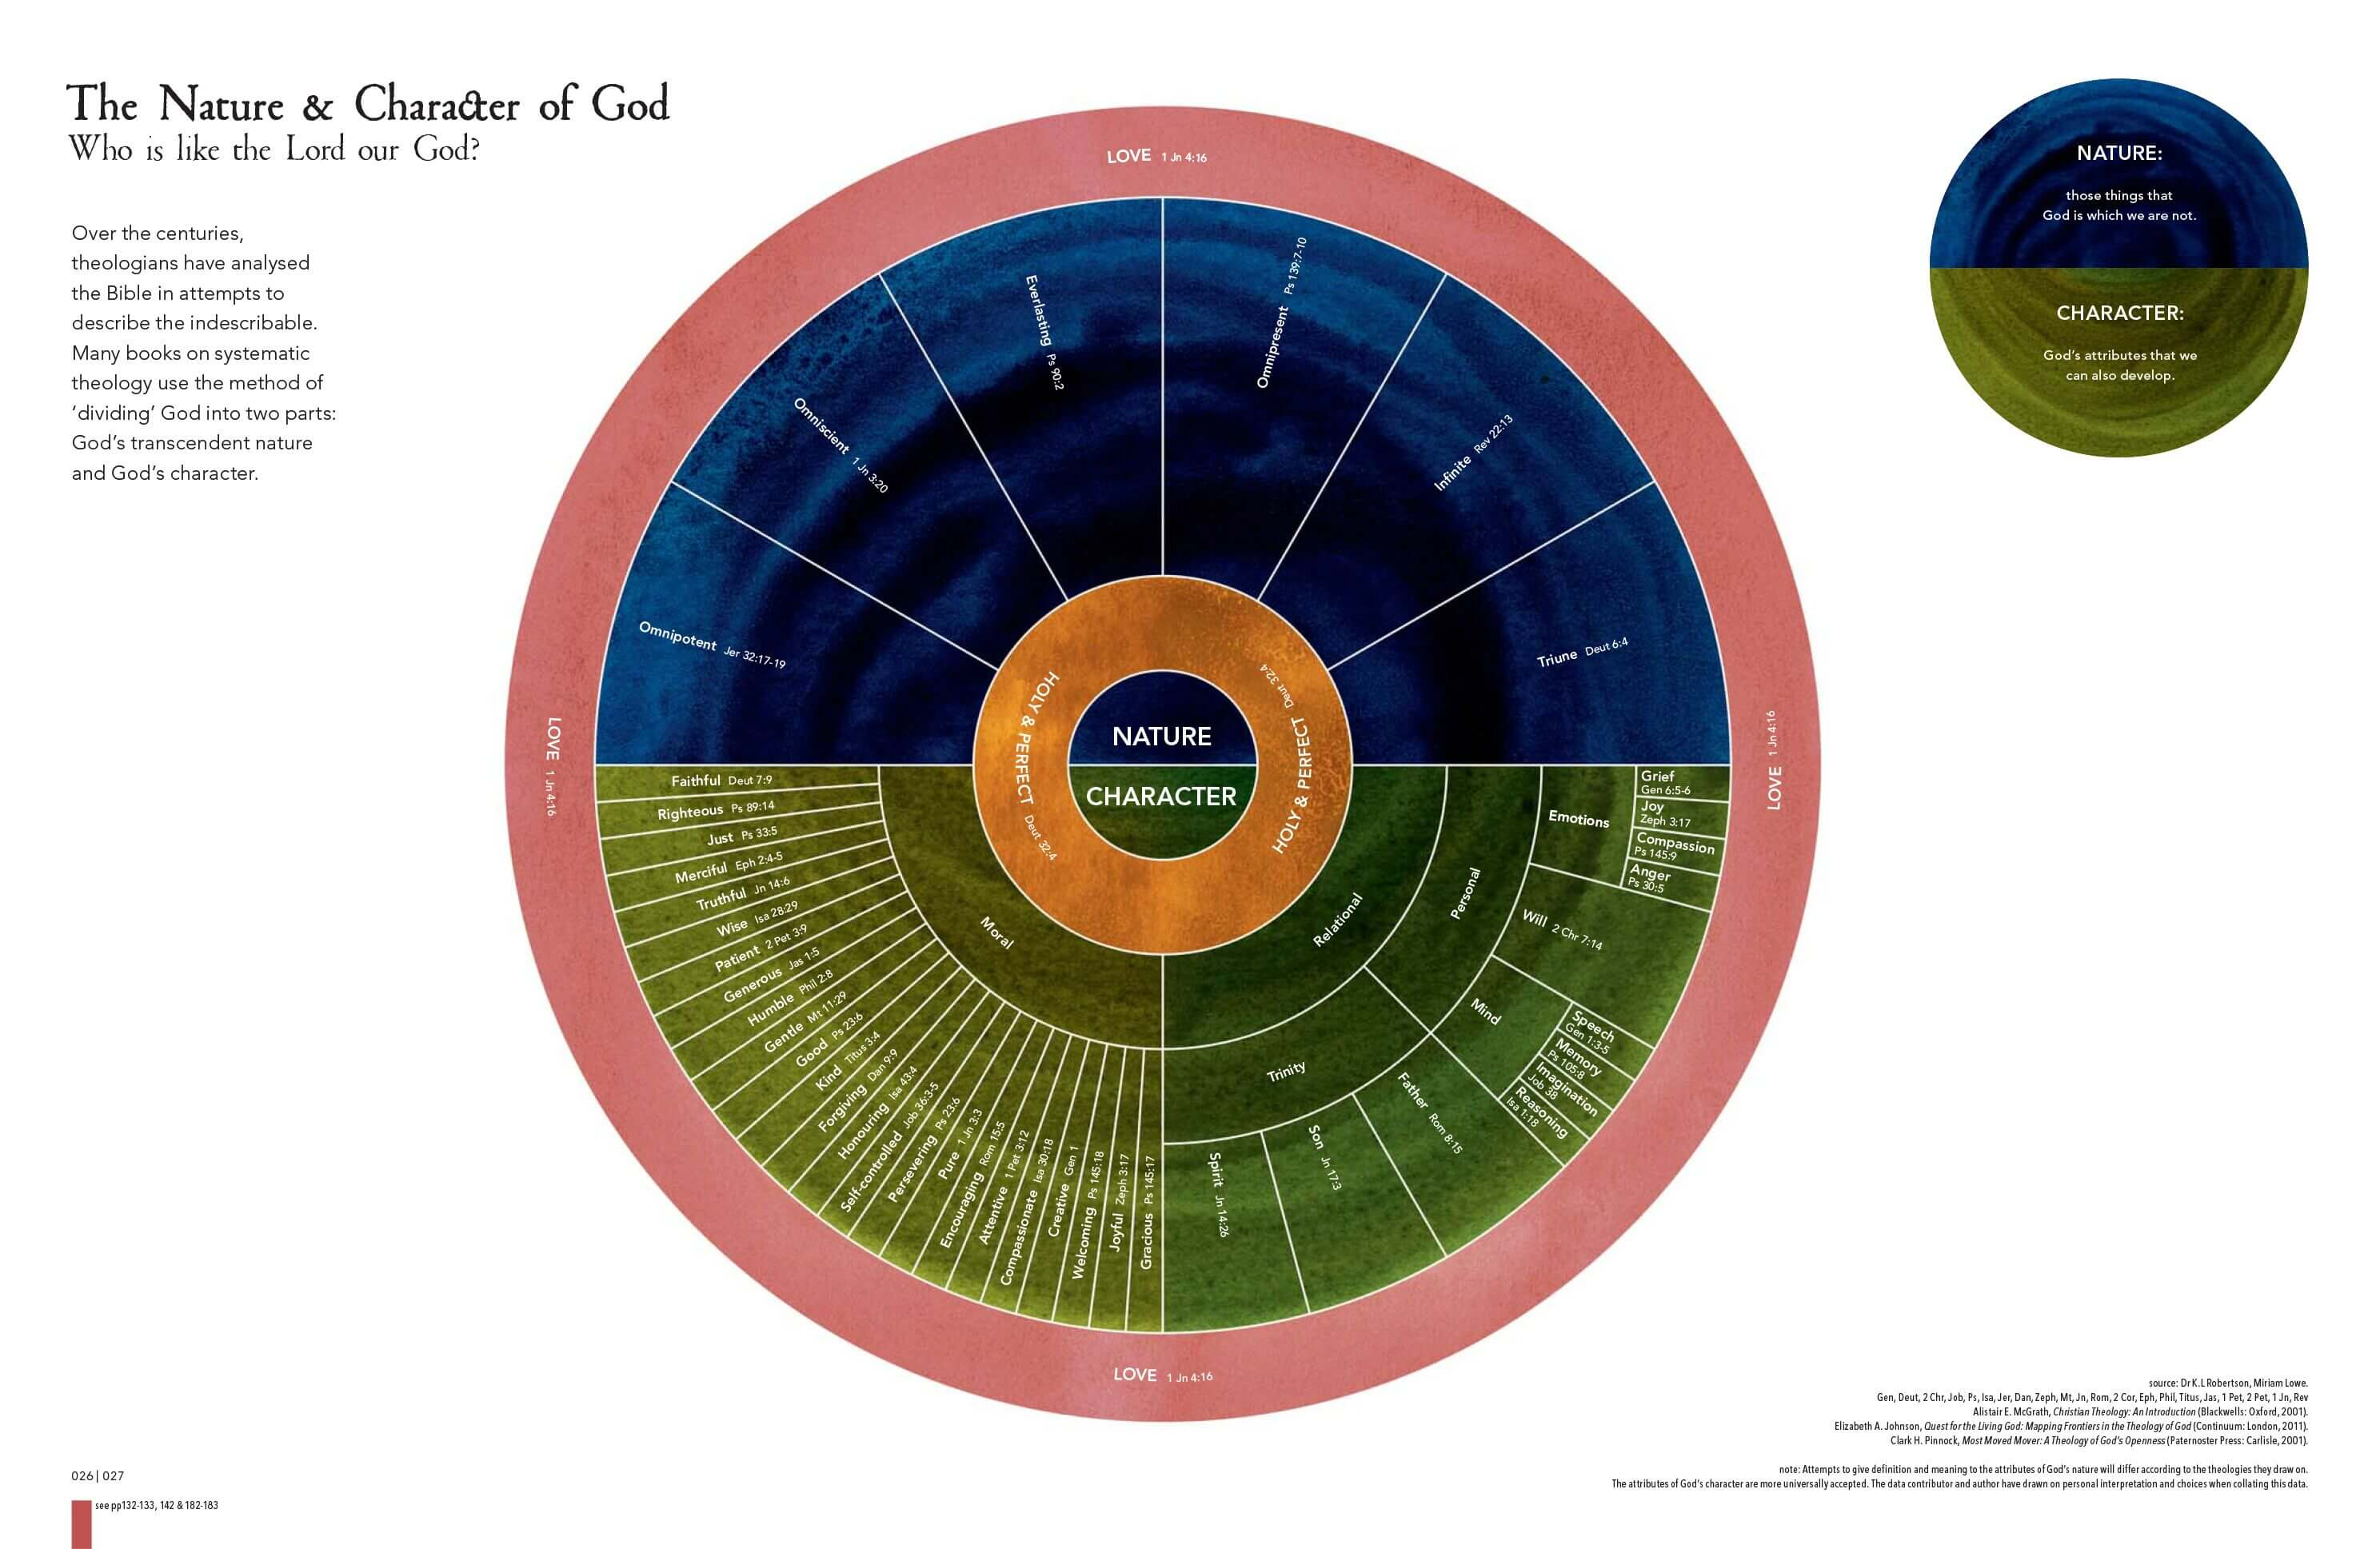 Click to enlarge this infographic depicting the nature and character of God in the Bible